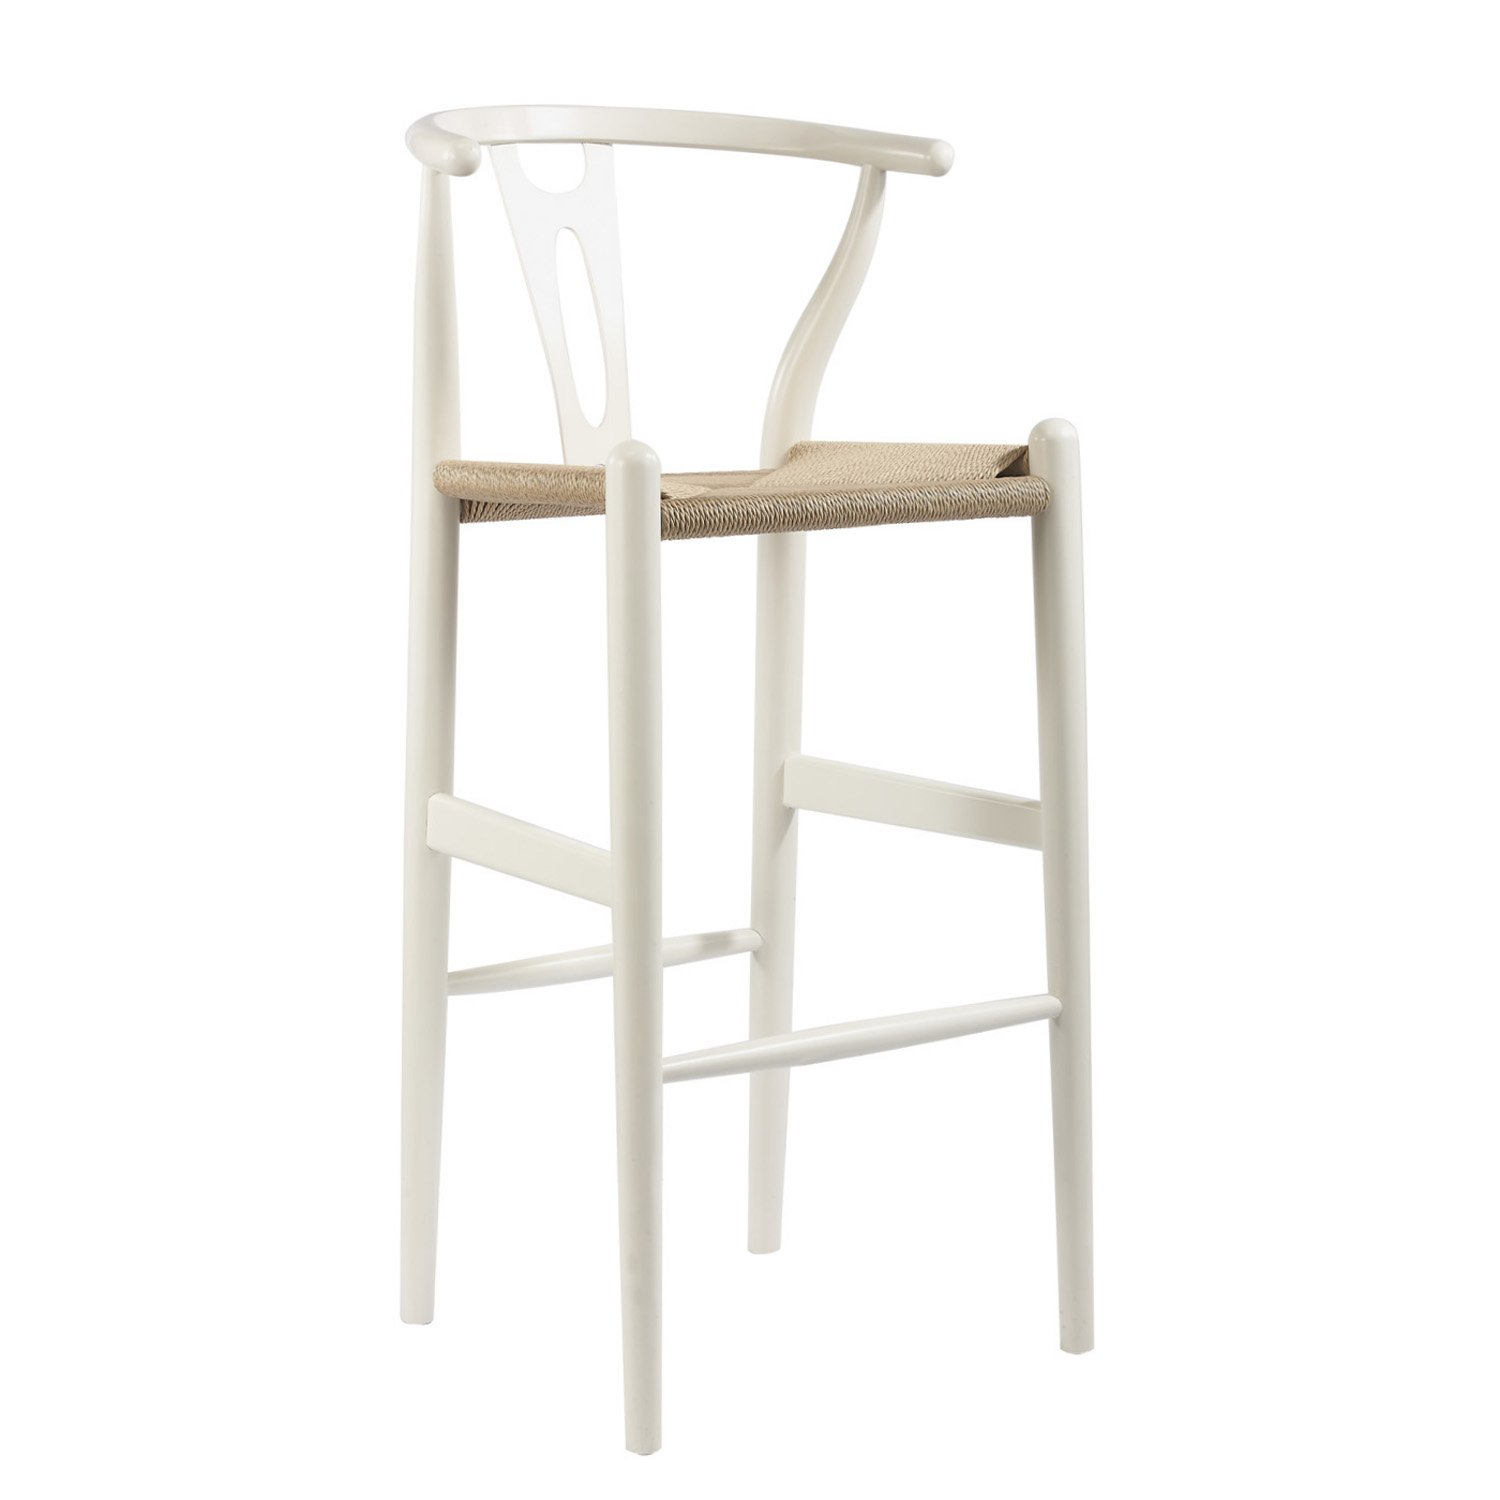 Amazon.com Baxton Studio Mid-Century Modern Wishbone Wood-Y Stool White Kitchen u0026 Dining  sc 1 st  Amazon.com & Amazon.com: Baxton Studio Mid-Century Modern Wishbone Wood-Y Stool ... islam-shia.org